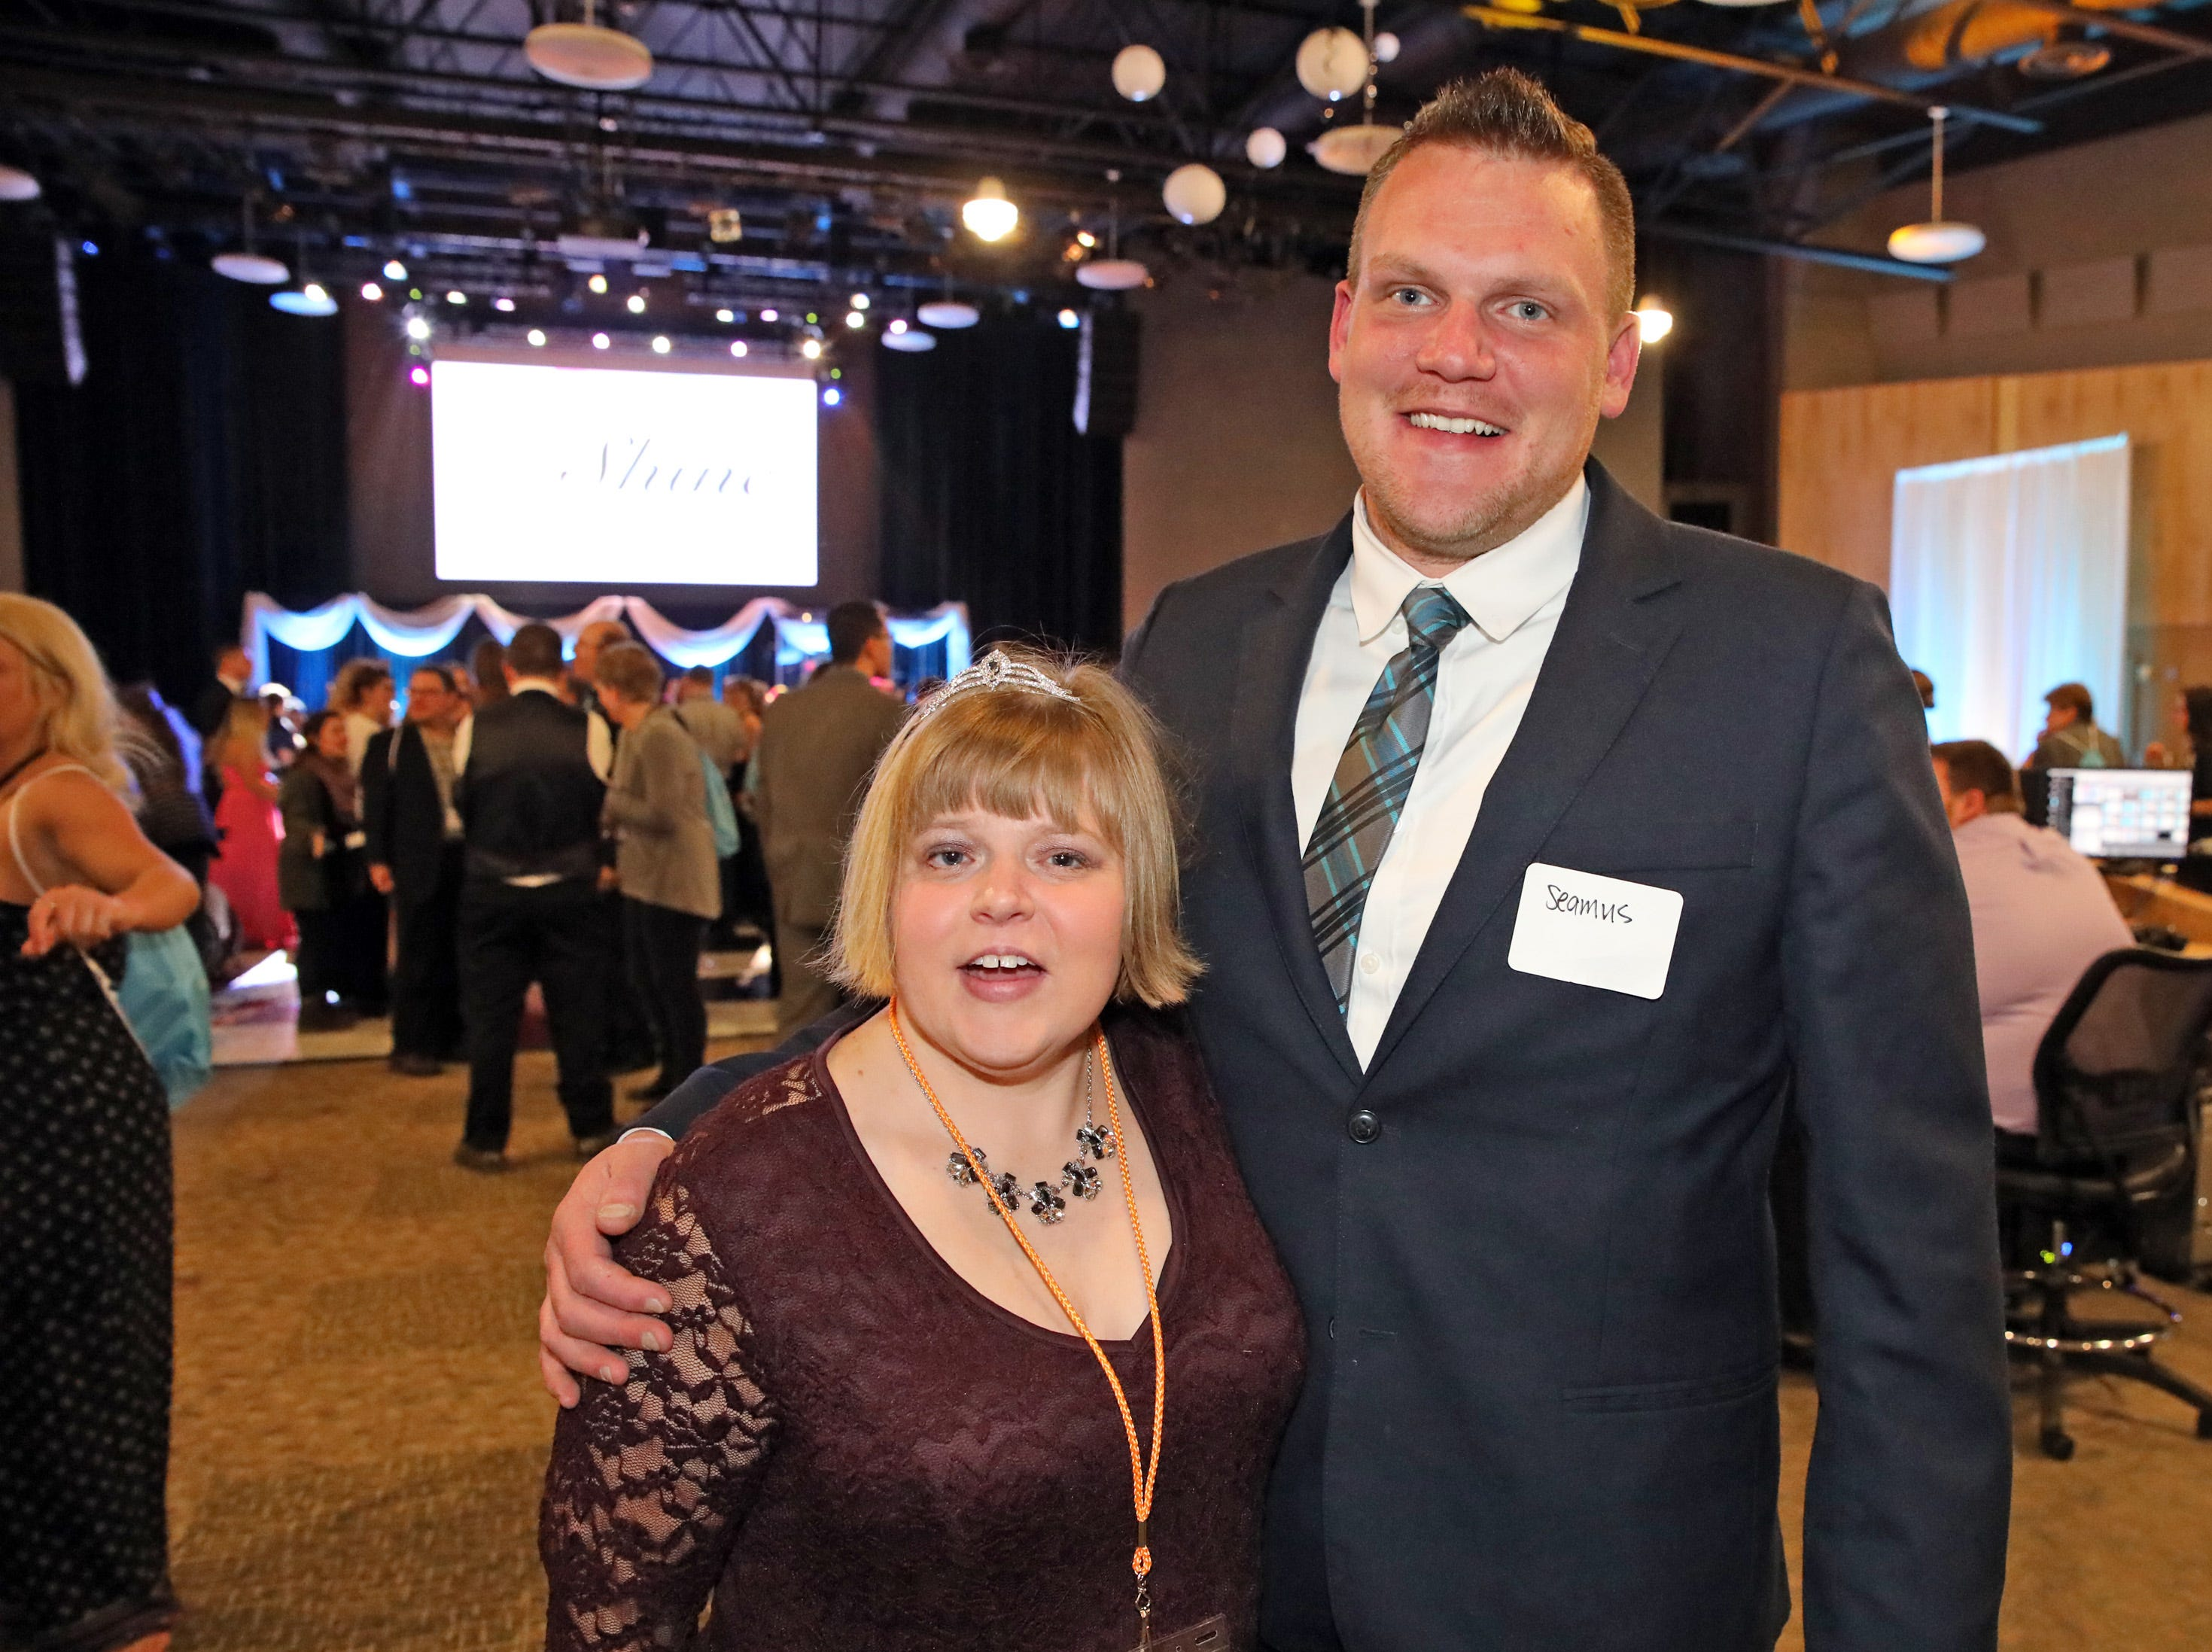 Jessica Smith of Ankeny and her brother, Seamus Wilkerson, enjoy the Night to Shine event at Prairie Ridge Church in Ankeny on Friday, Feb. 8, 2019. Sponsored by the Tim Tebow Foundation, the event for adults with special needs features a prom-like atmosphere with dancing, limo rides, food and more.